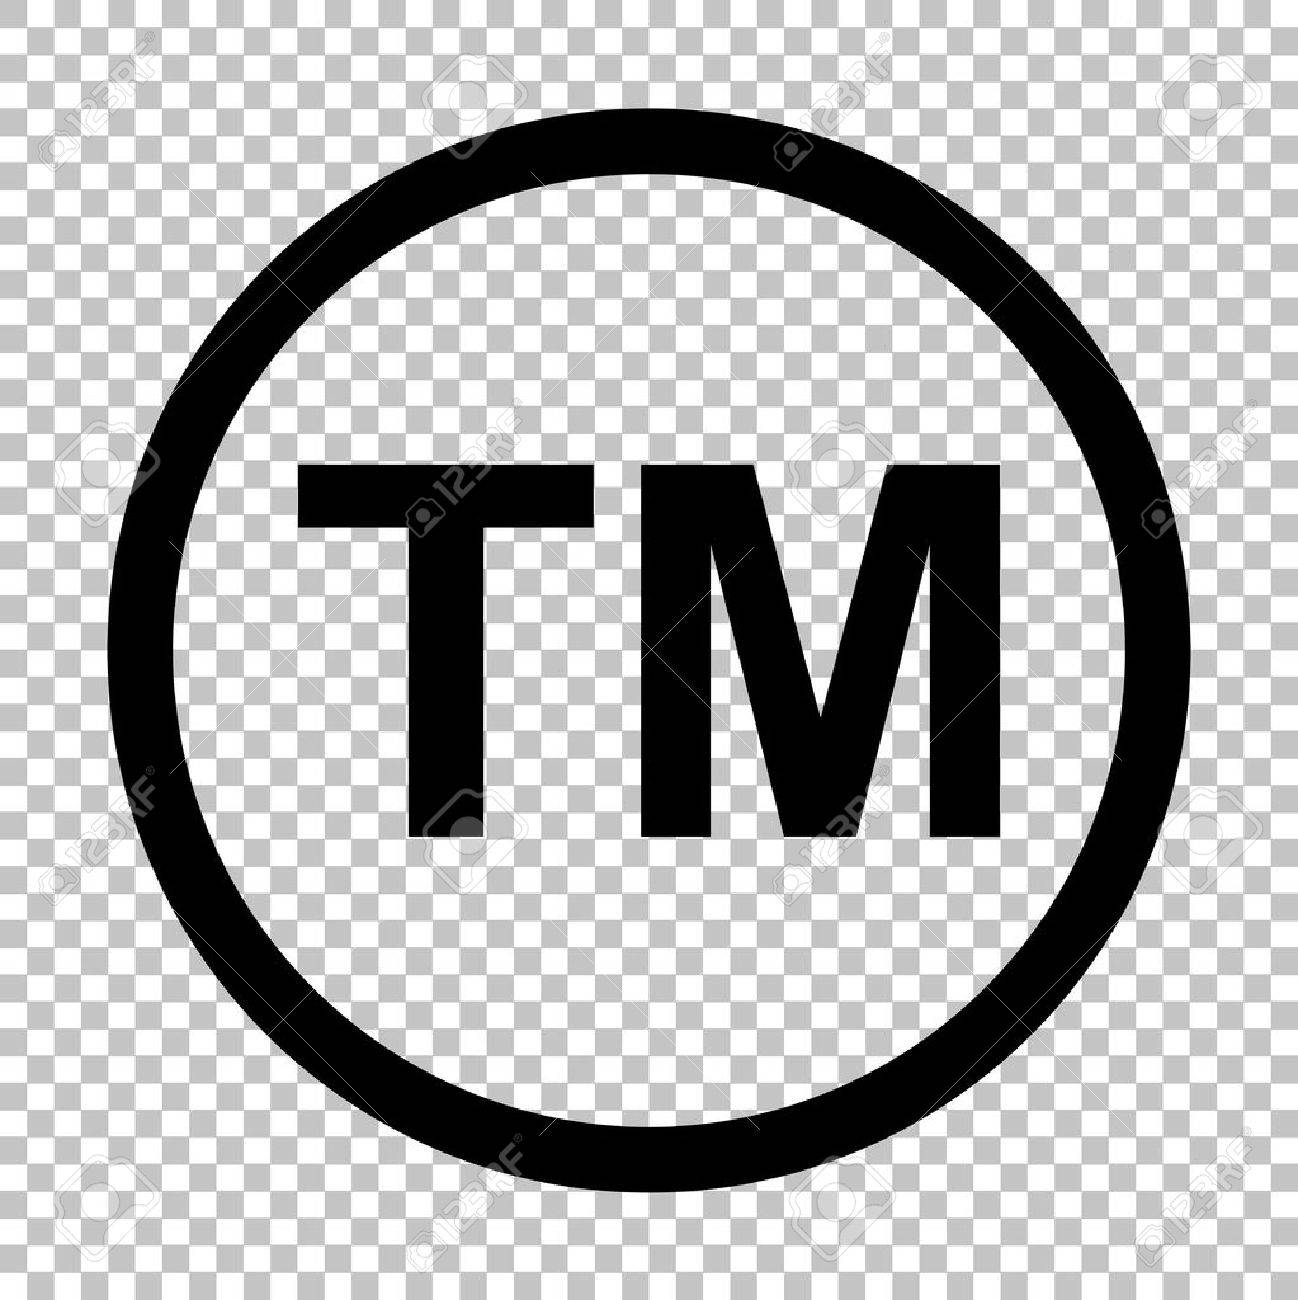 Trade mark sign. Flat style icon on transparent background - 52180935